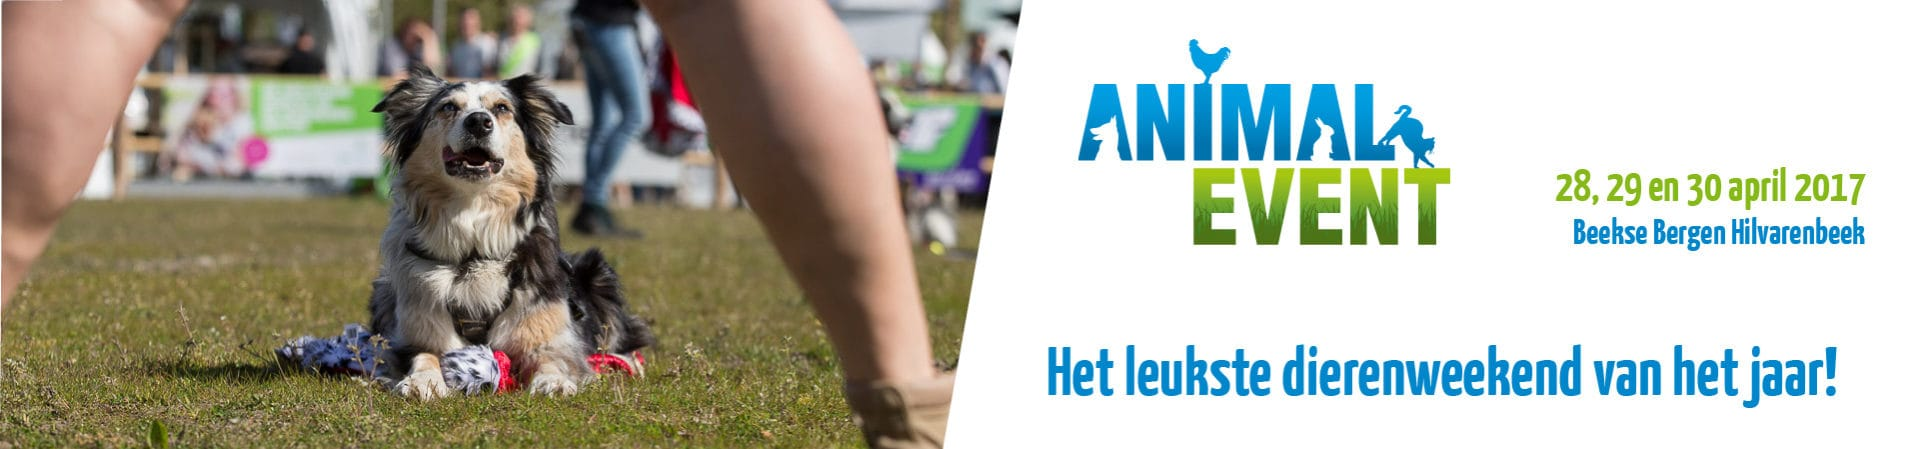 Animal Event 2017 Beekse Bergen Ticketpoint